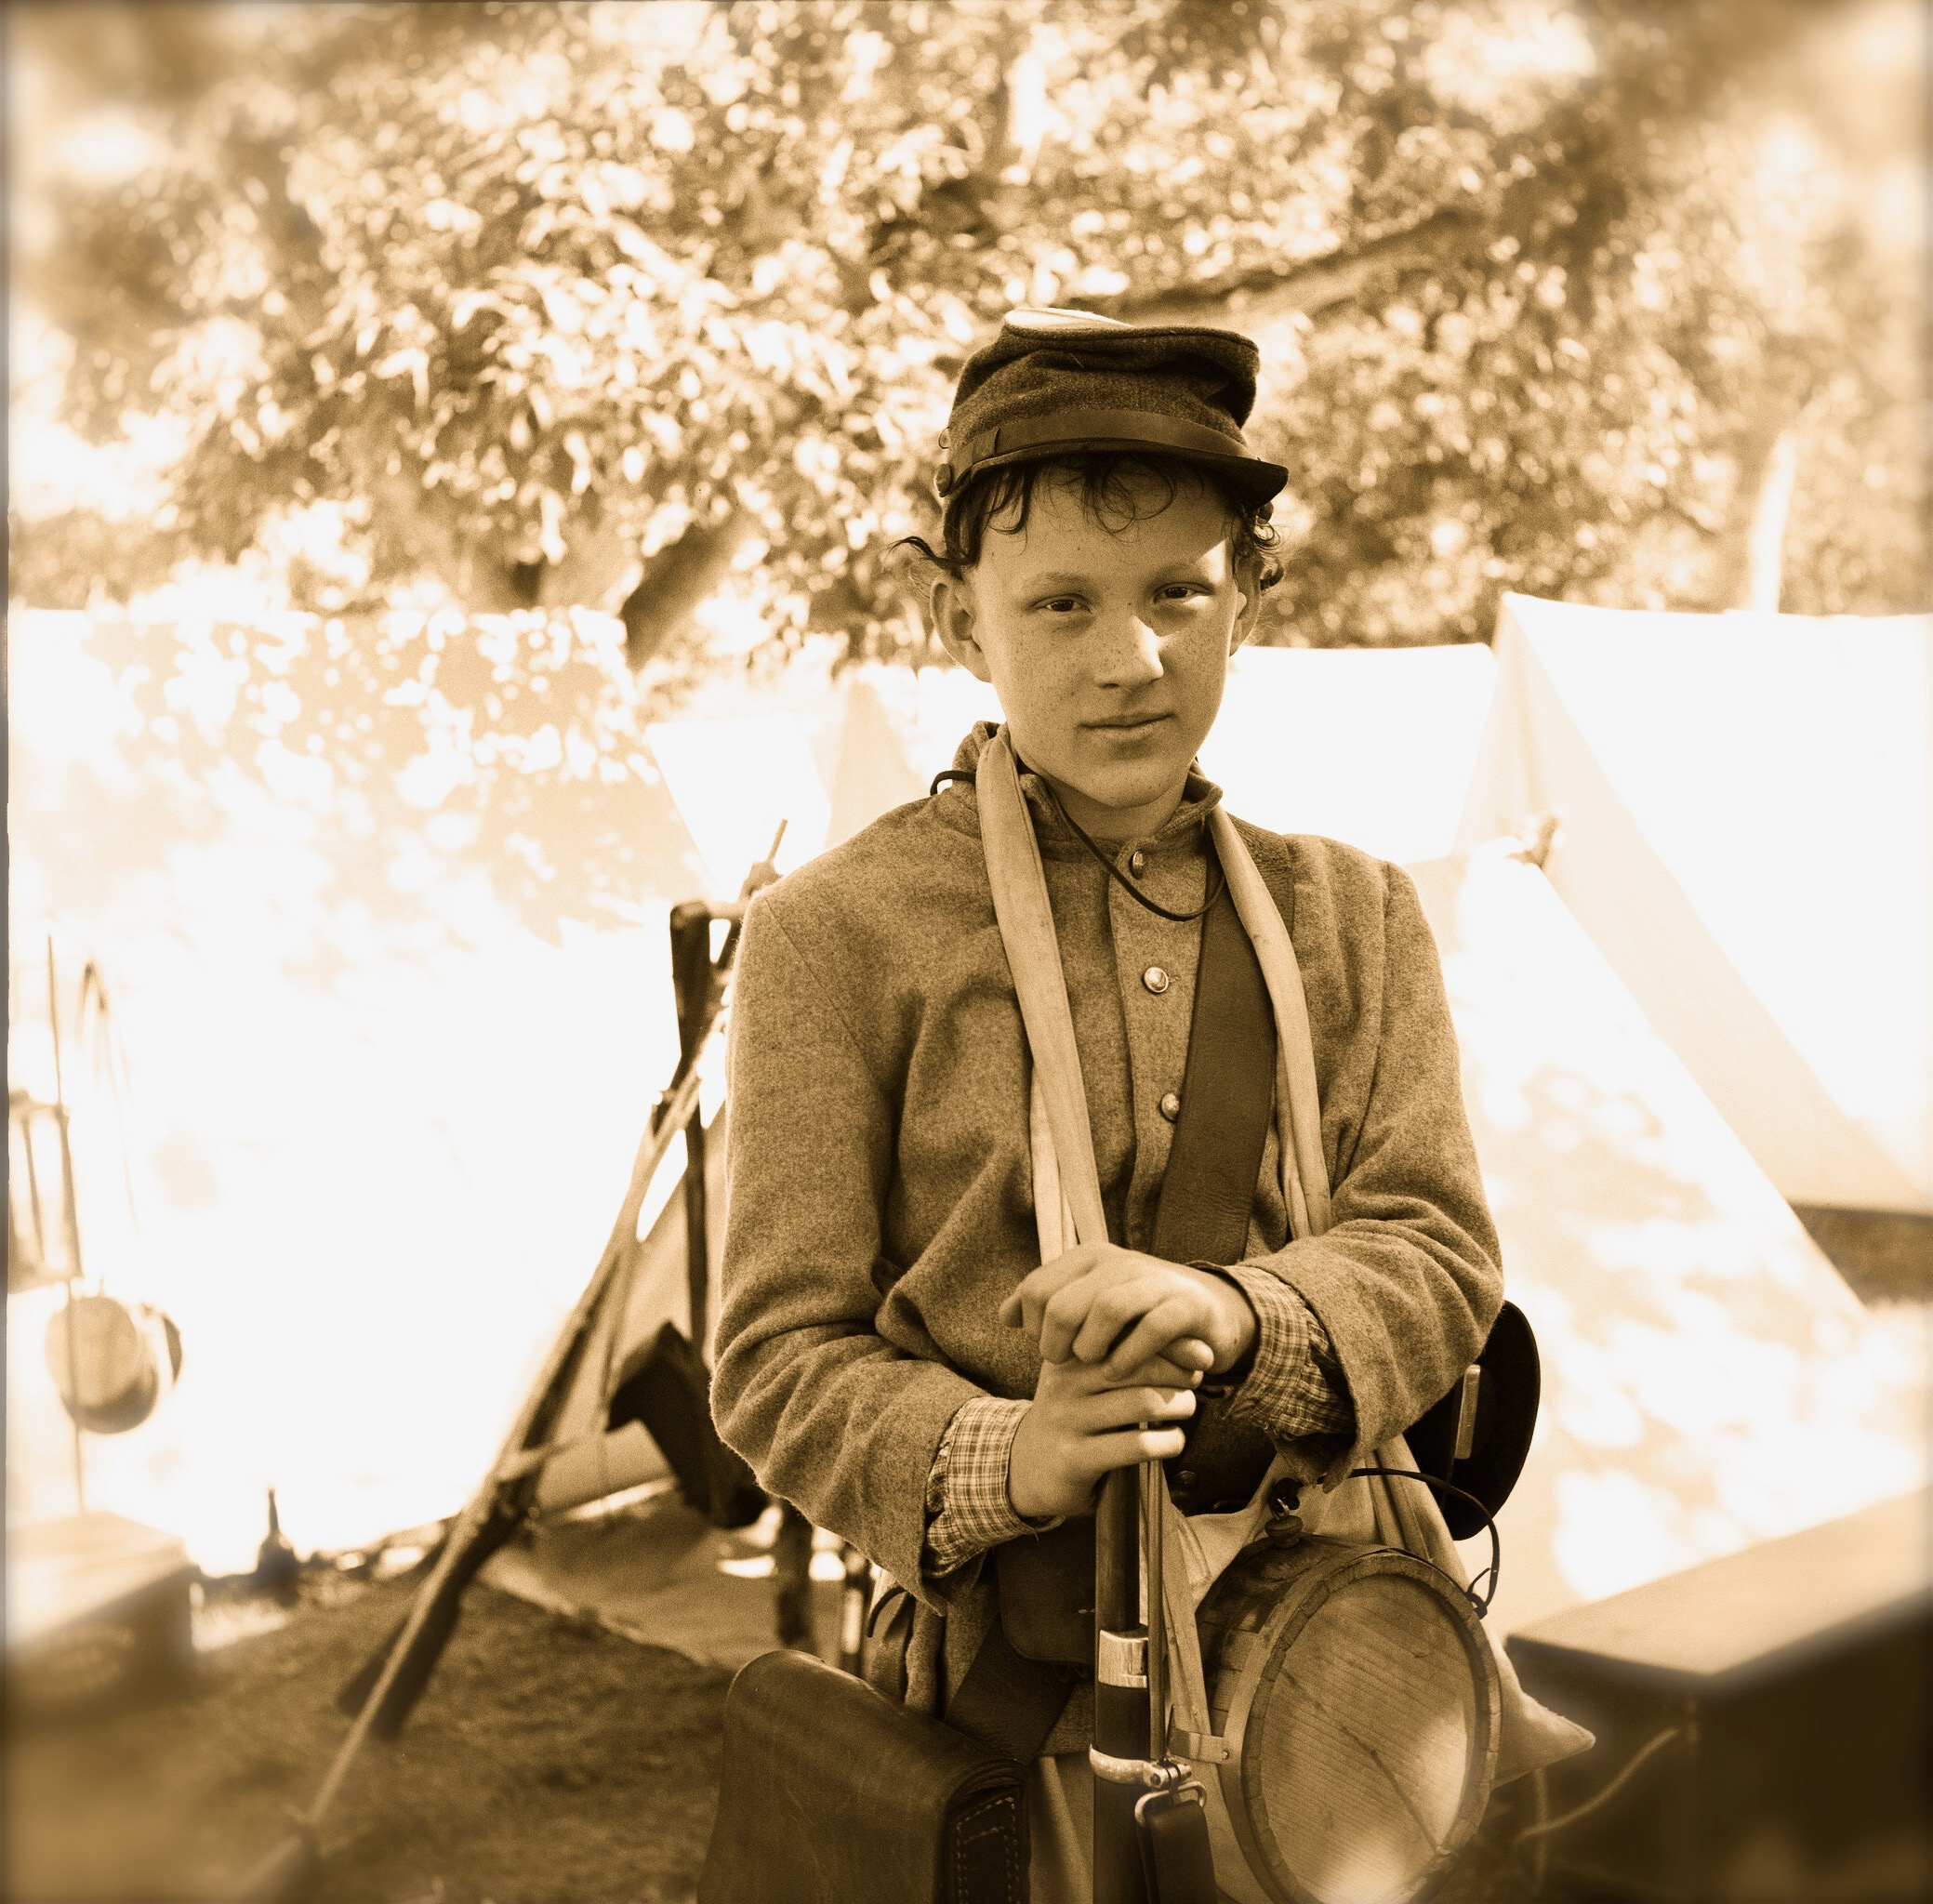 Civil War Re-enactment (Young Confederate)